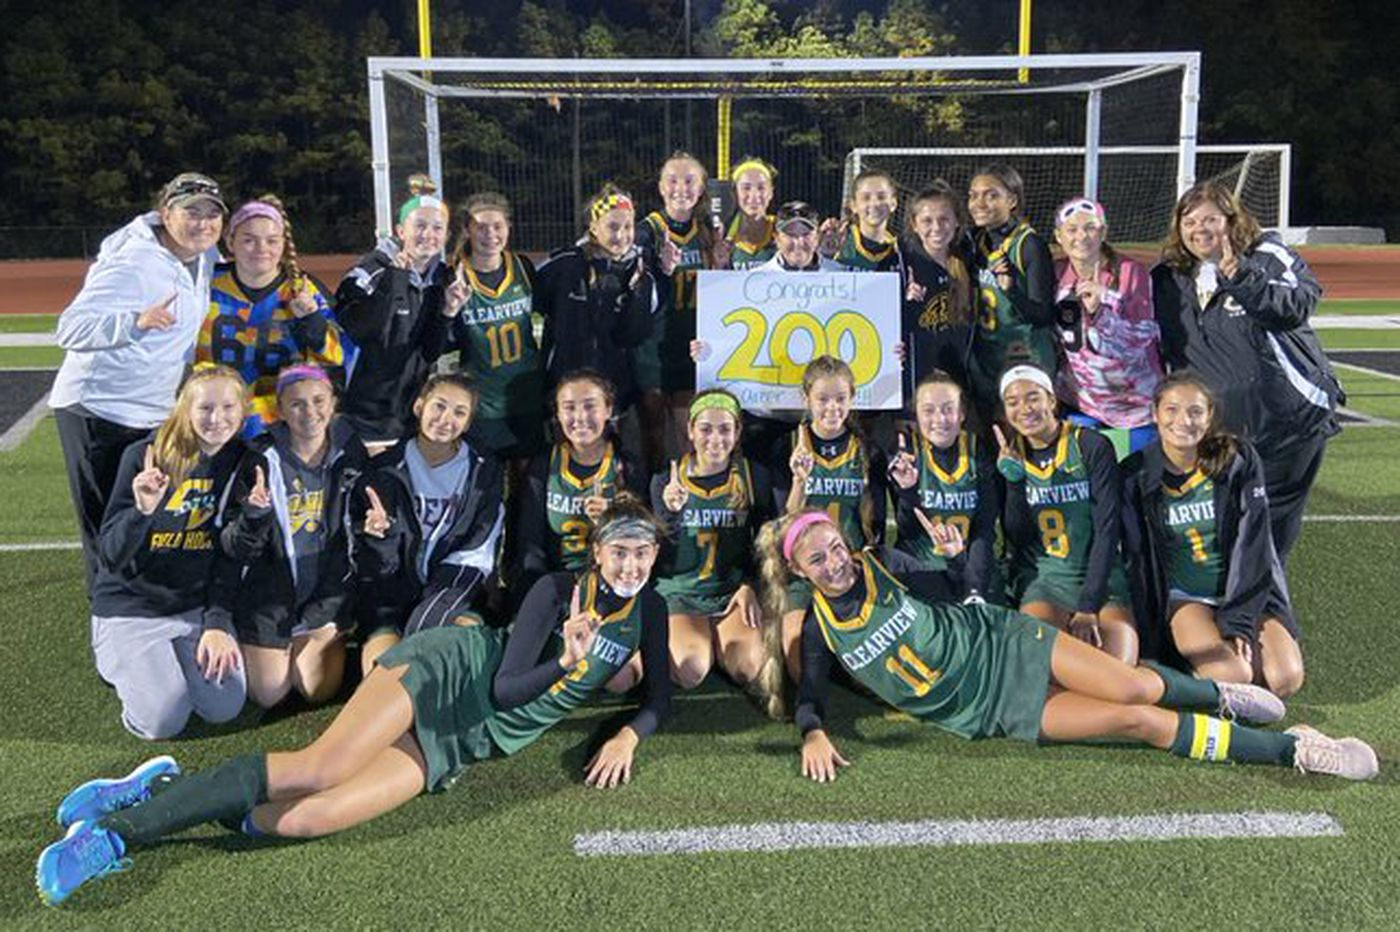 Tuesday's South Jersey roundup: Britney Ewan records 200th career win, Clearview field hockey beats Burlington Township in NJSIAA Group 3 semifinals